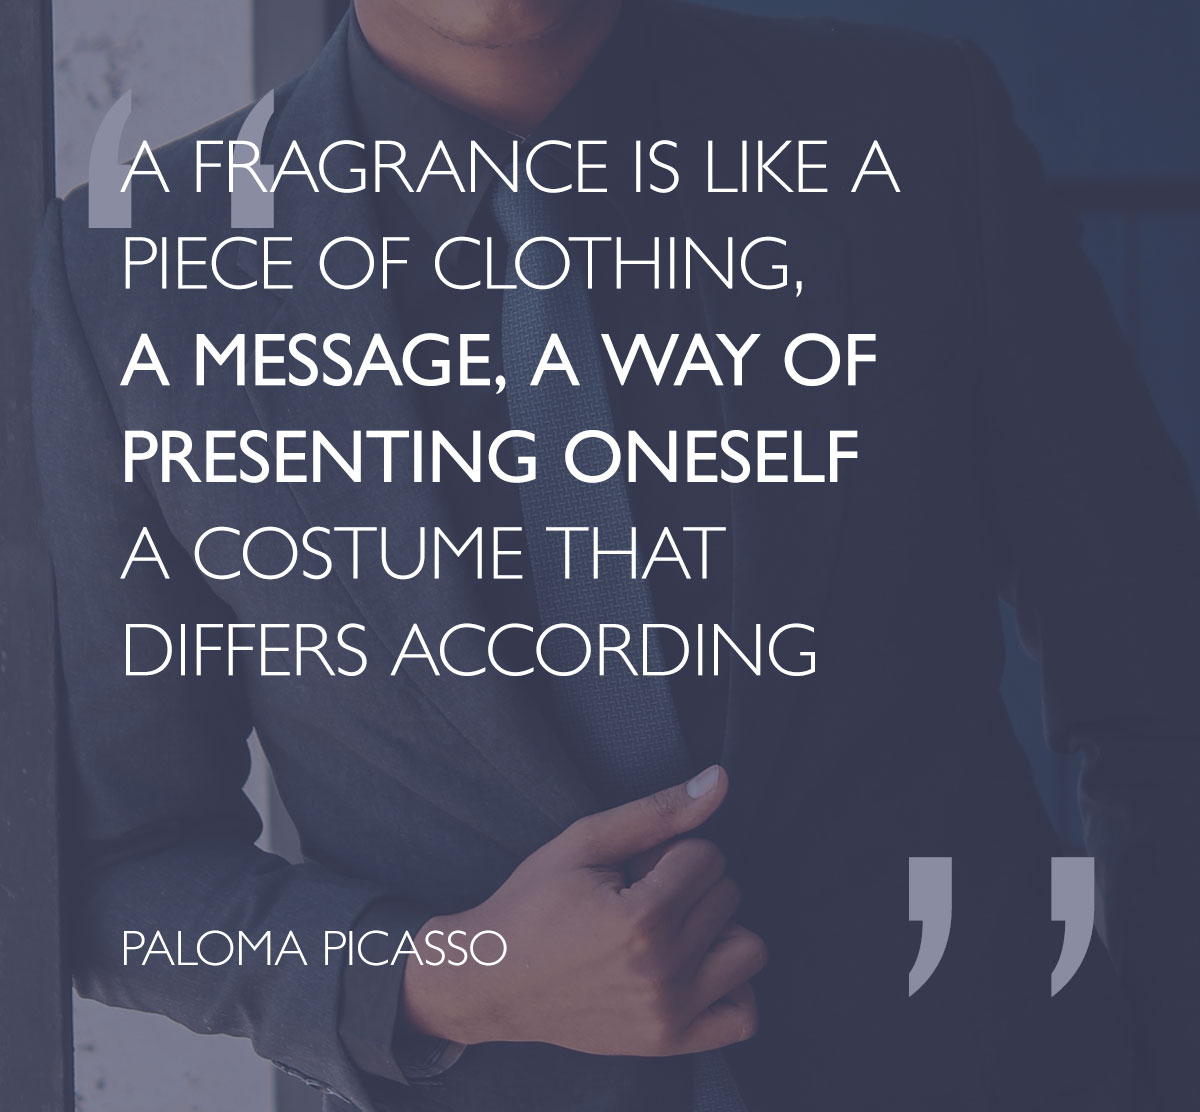 A fragrance is like a piece of clothing, a message, a way of presenting oneself a costume that differs according - Paloma Picasso